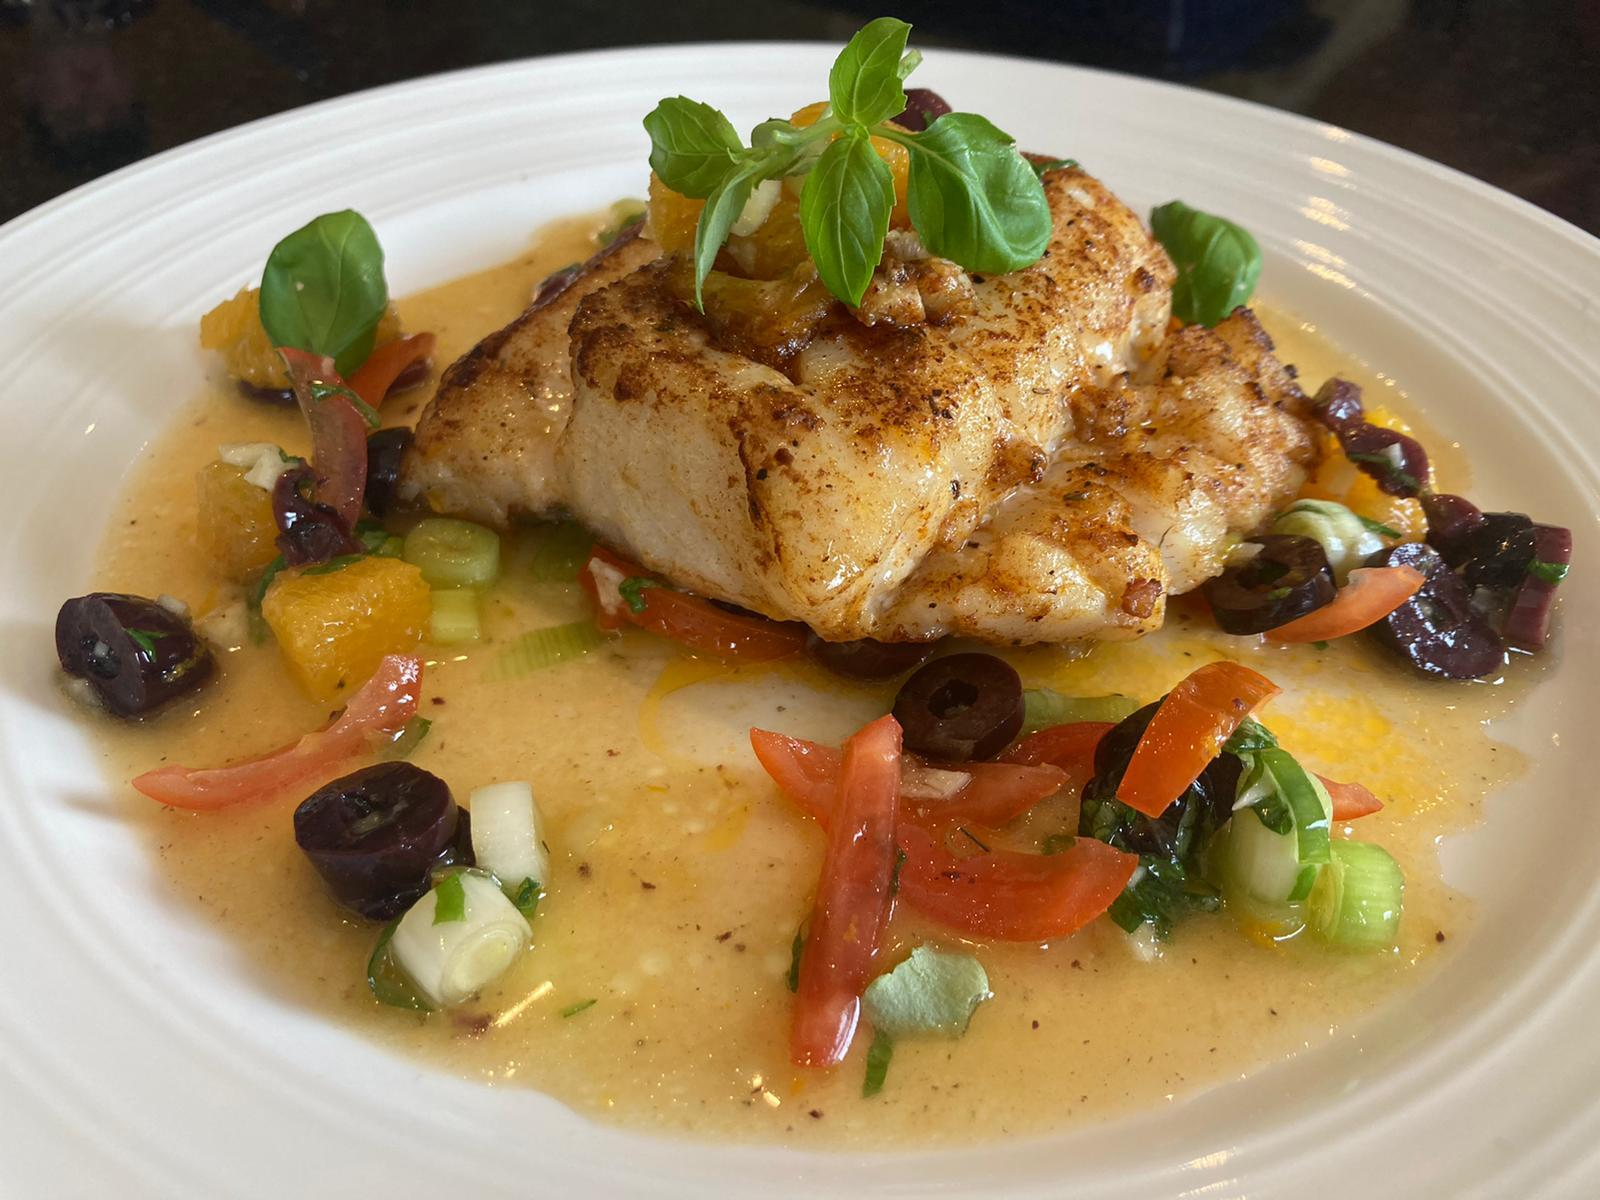 Cajun Cod with an Orange & Tomato Salsa by Consultant Chef Siobhán Devereux Doyle